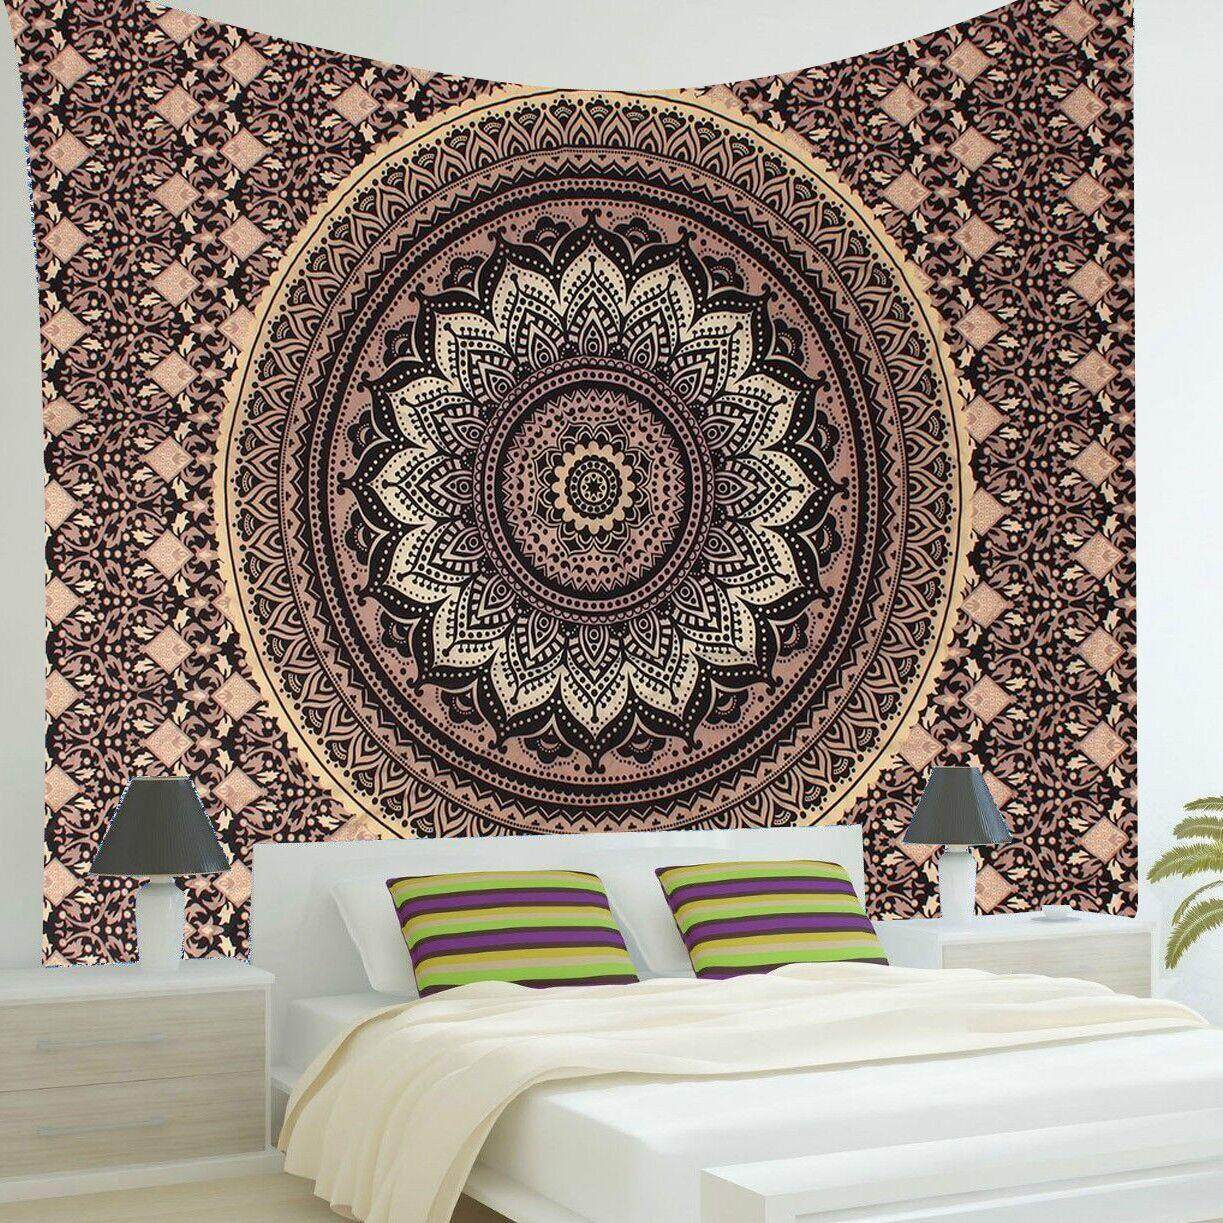 Home tapestries hangings buy home tapestries hangings at best indian ombre mandala hippie gold black wall hanging tapestry bedspread decor gumiabroncs Choice Image